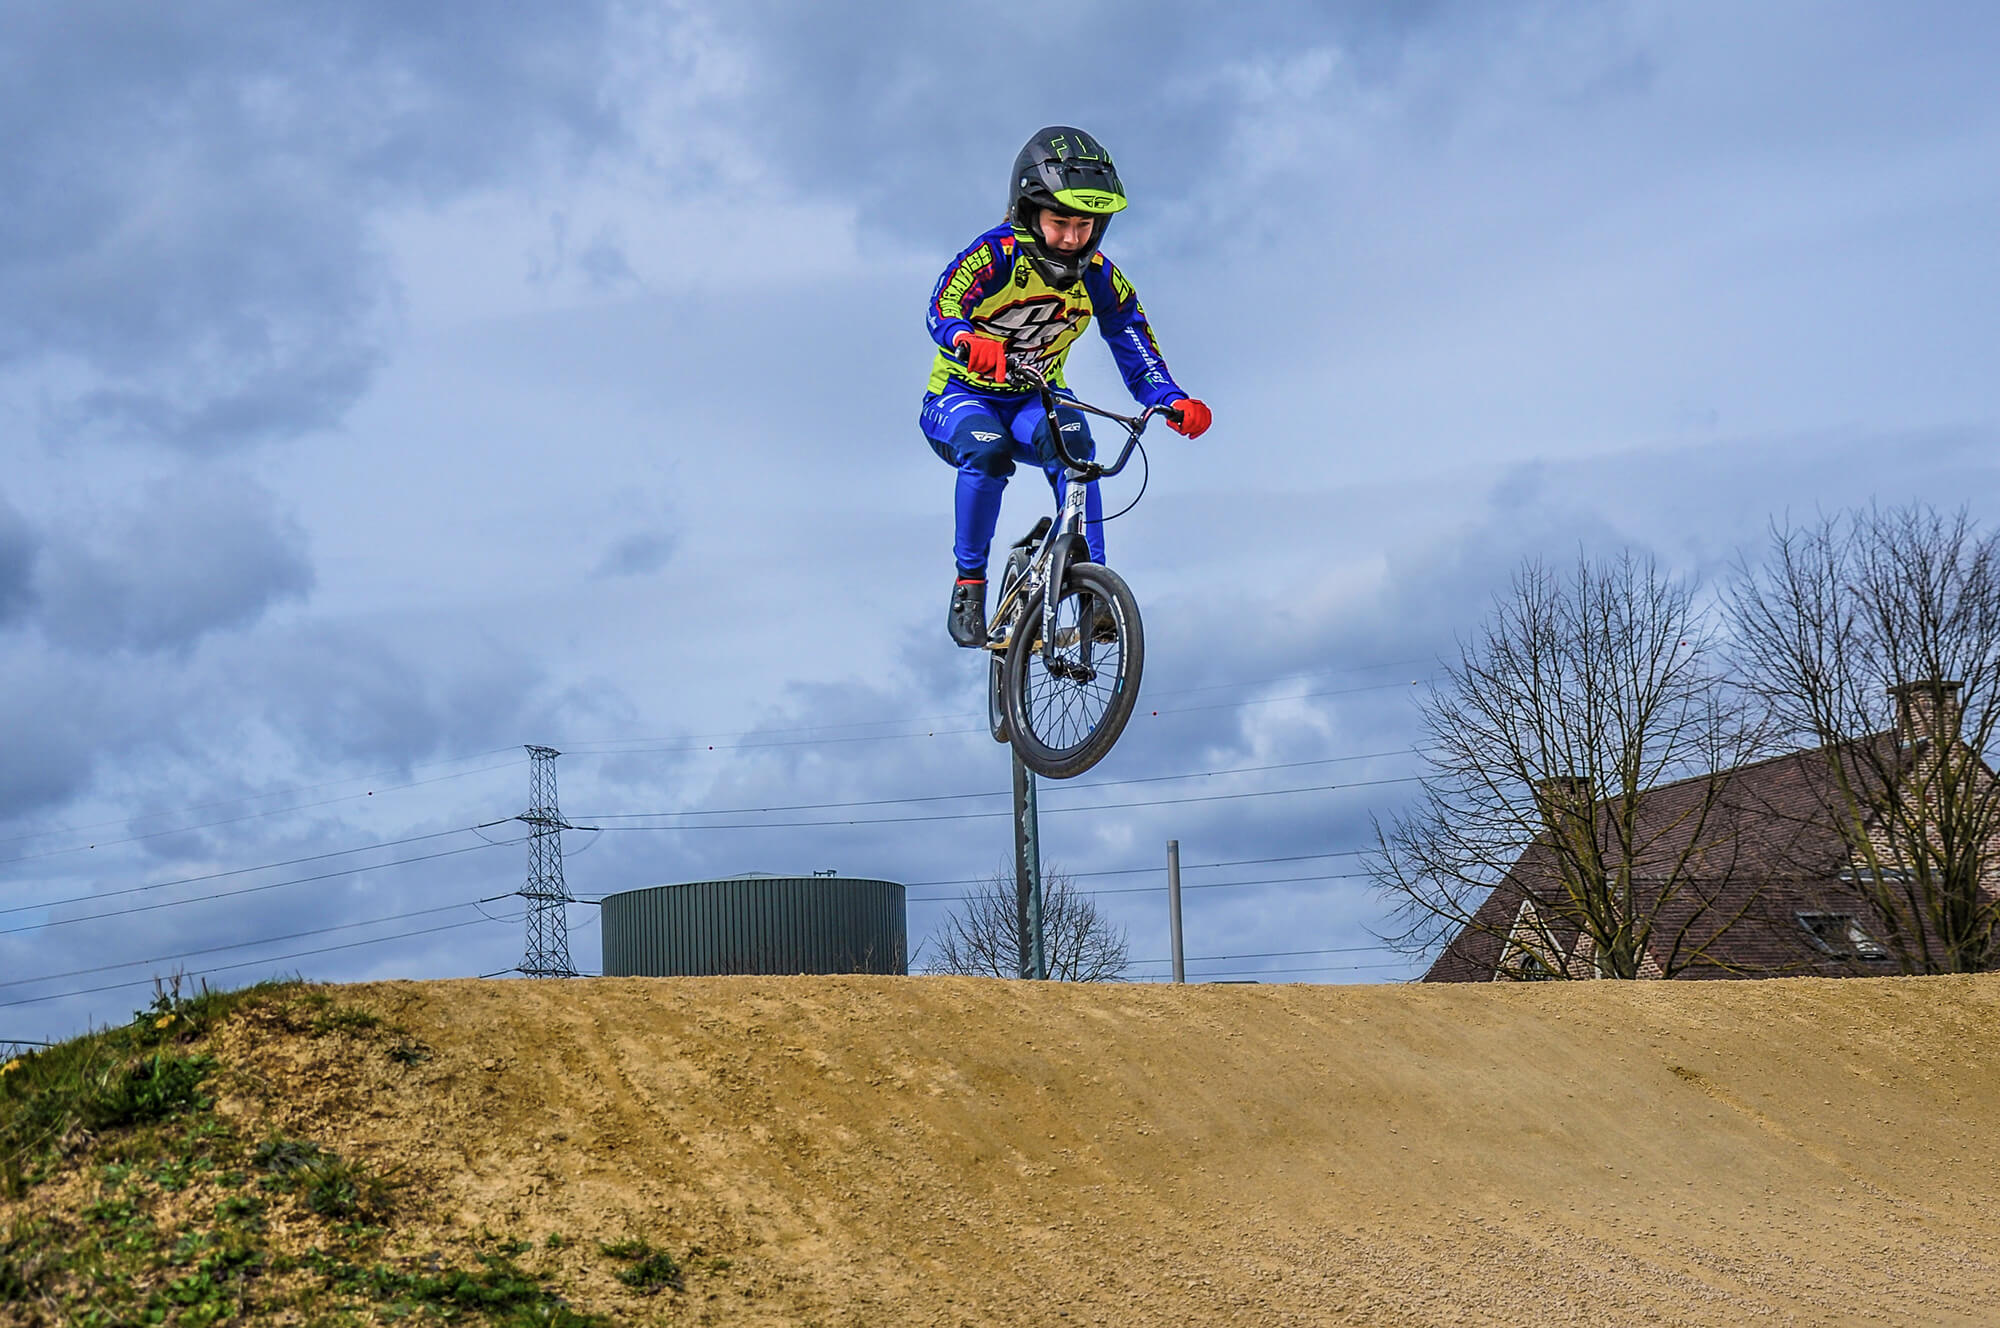 Robyn Gommers Supercross RS7 Bike Check April 2021 - Fifteen BMX